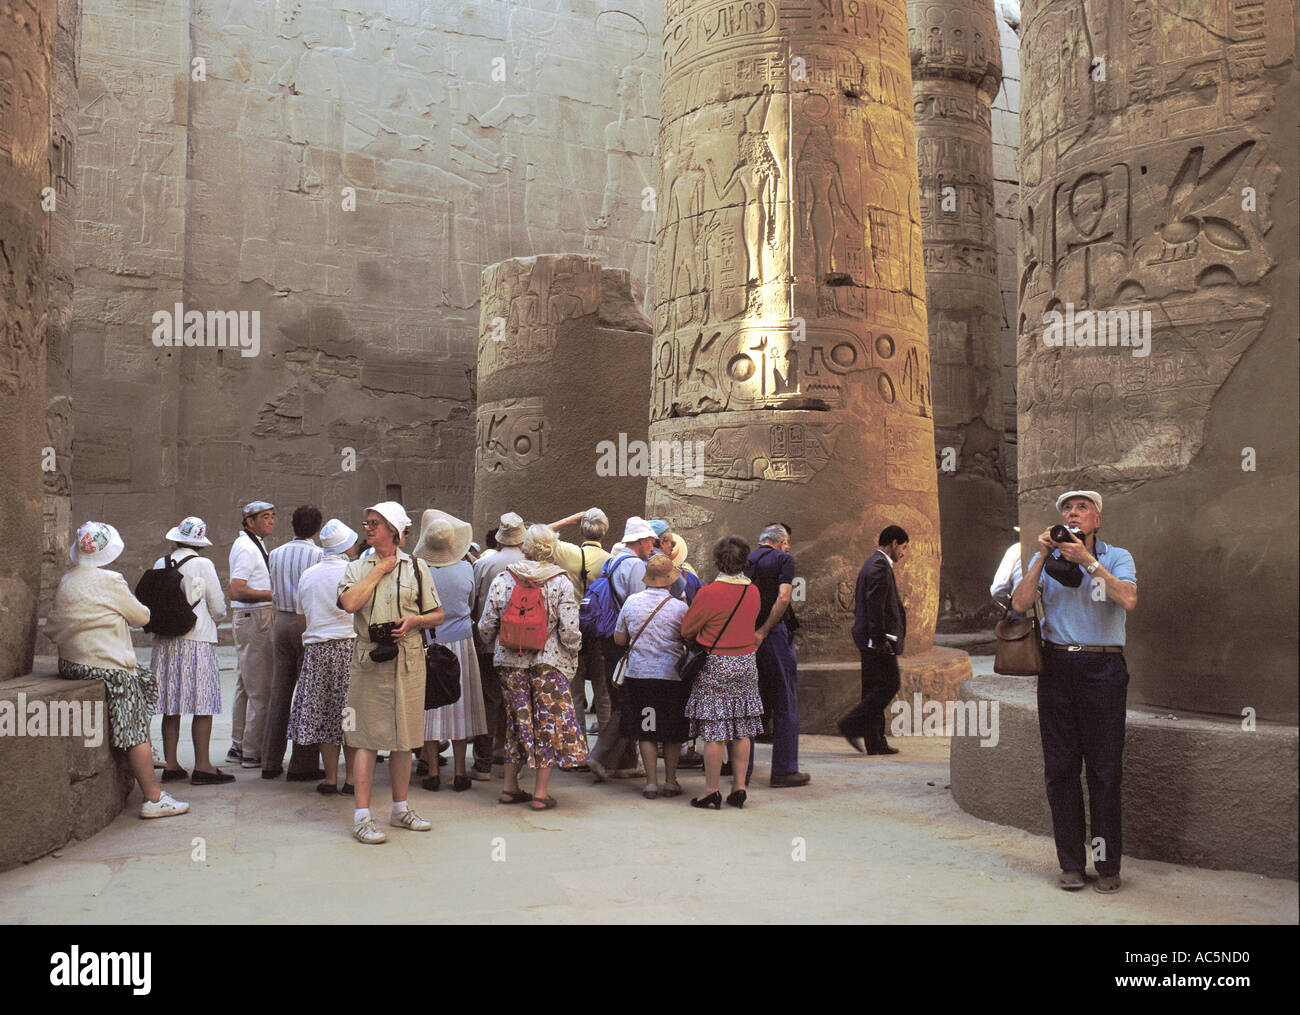 Tourist group in the Hypostyle Hall of Karnak, Luxor, Egypt - Stock Image